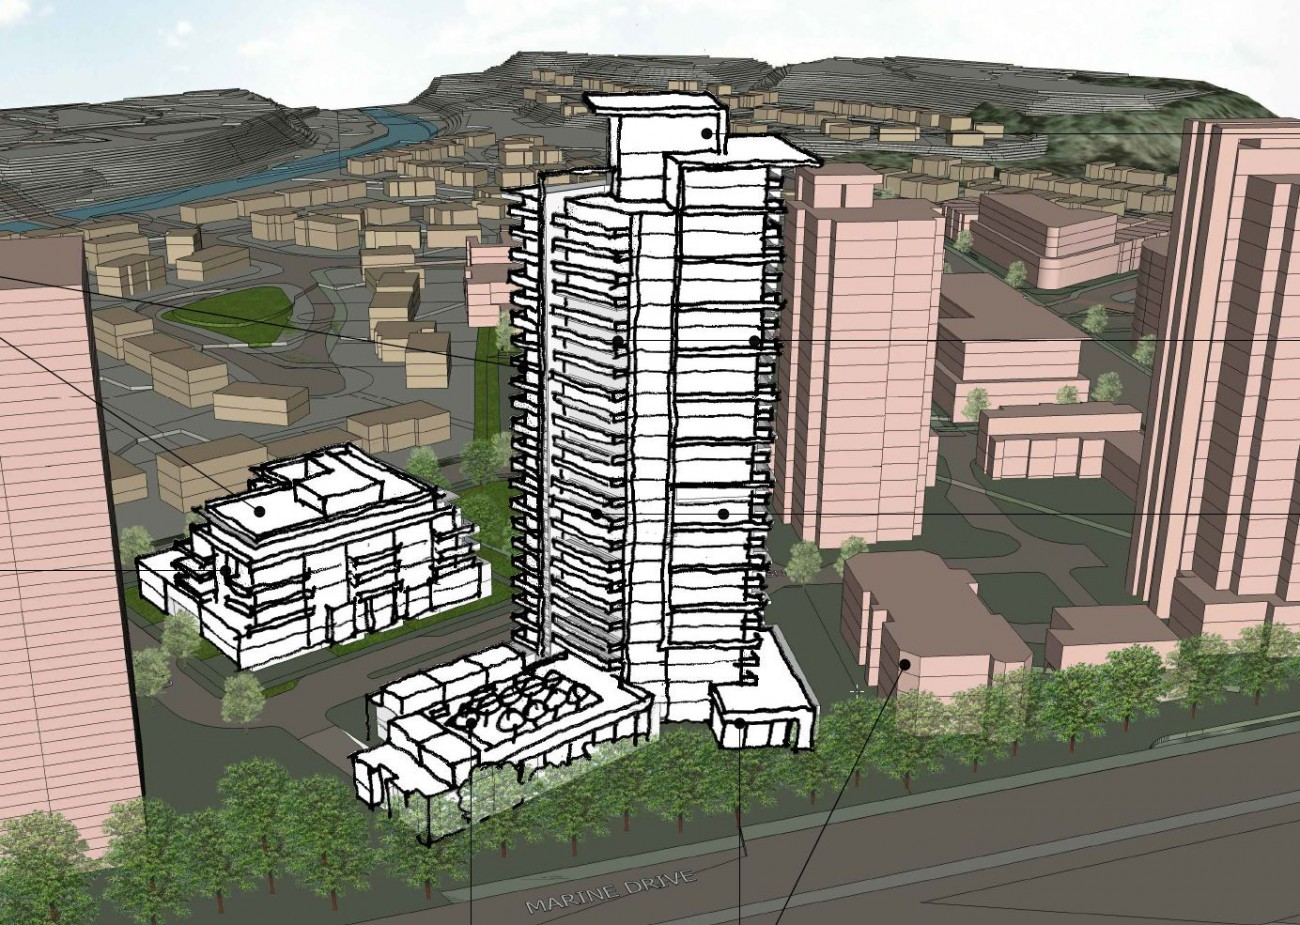 Sketch of a proposed development at 2050-2070 Marine Drive (Travelodge site)